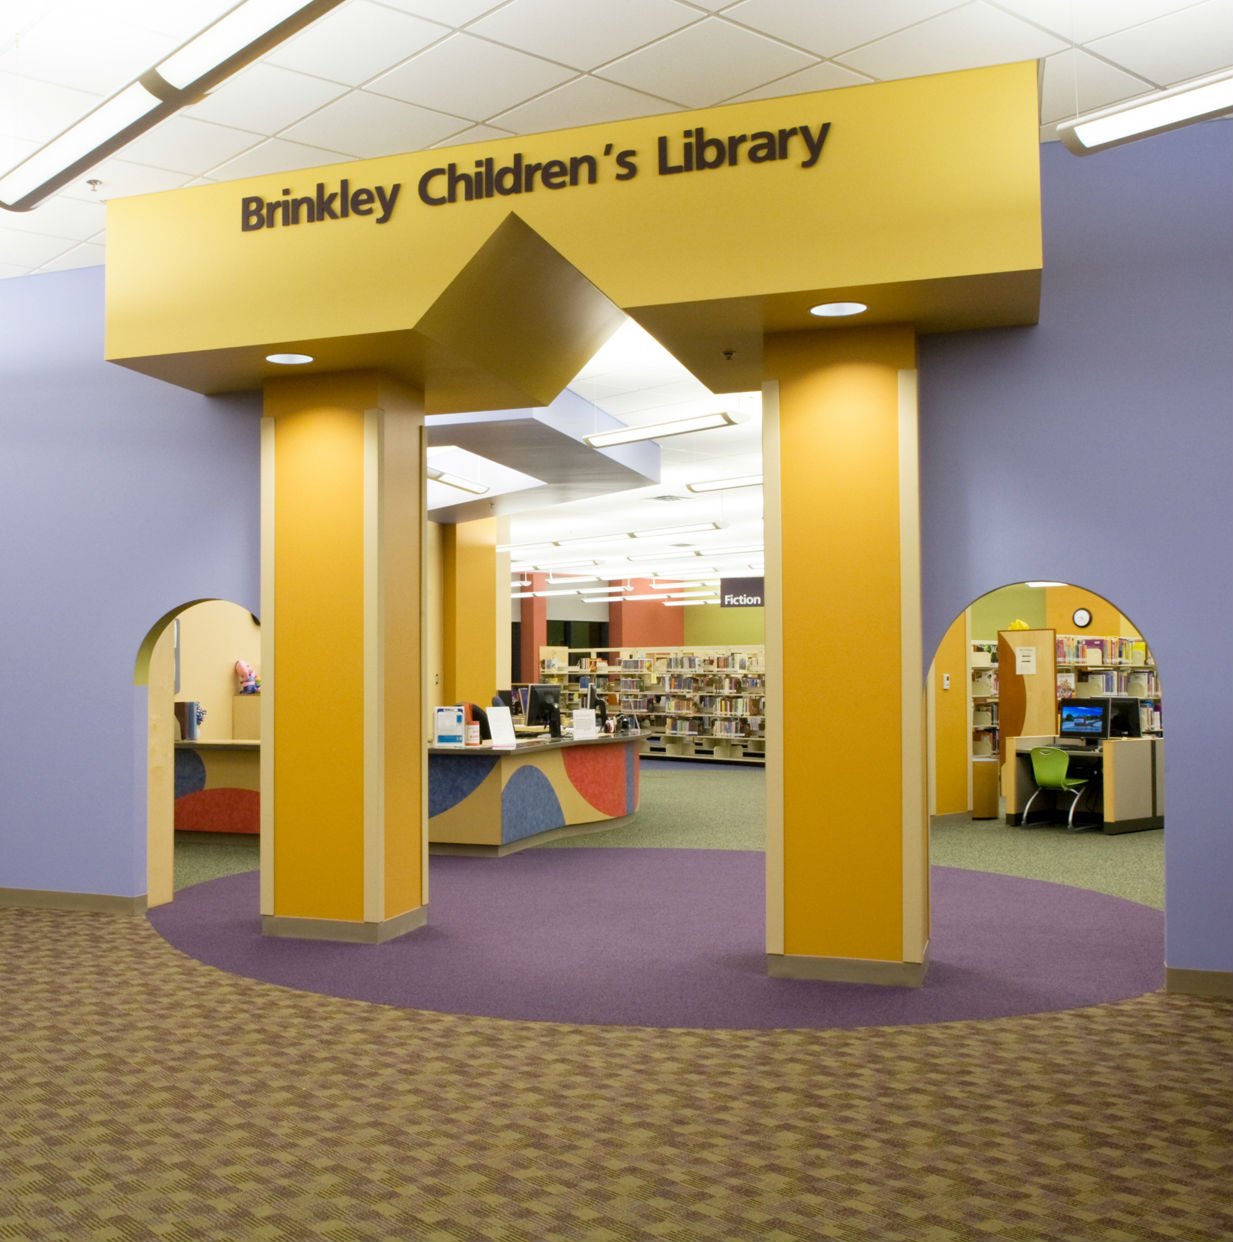 brinkley children's library, north richland hills library, texas,